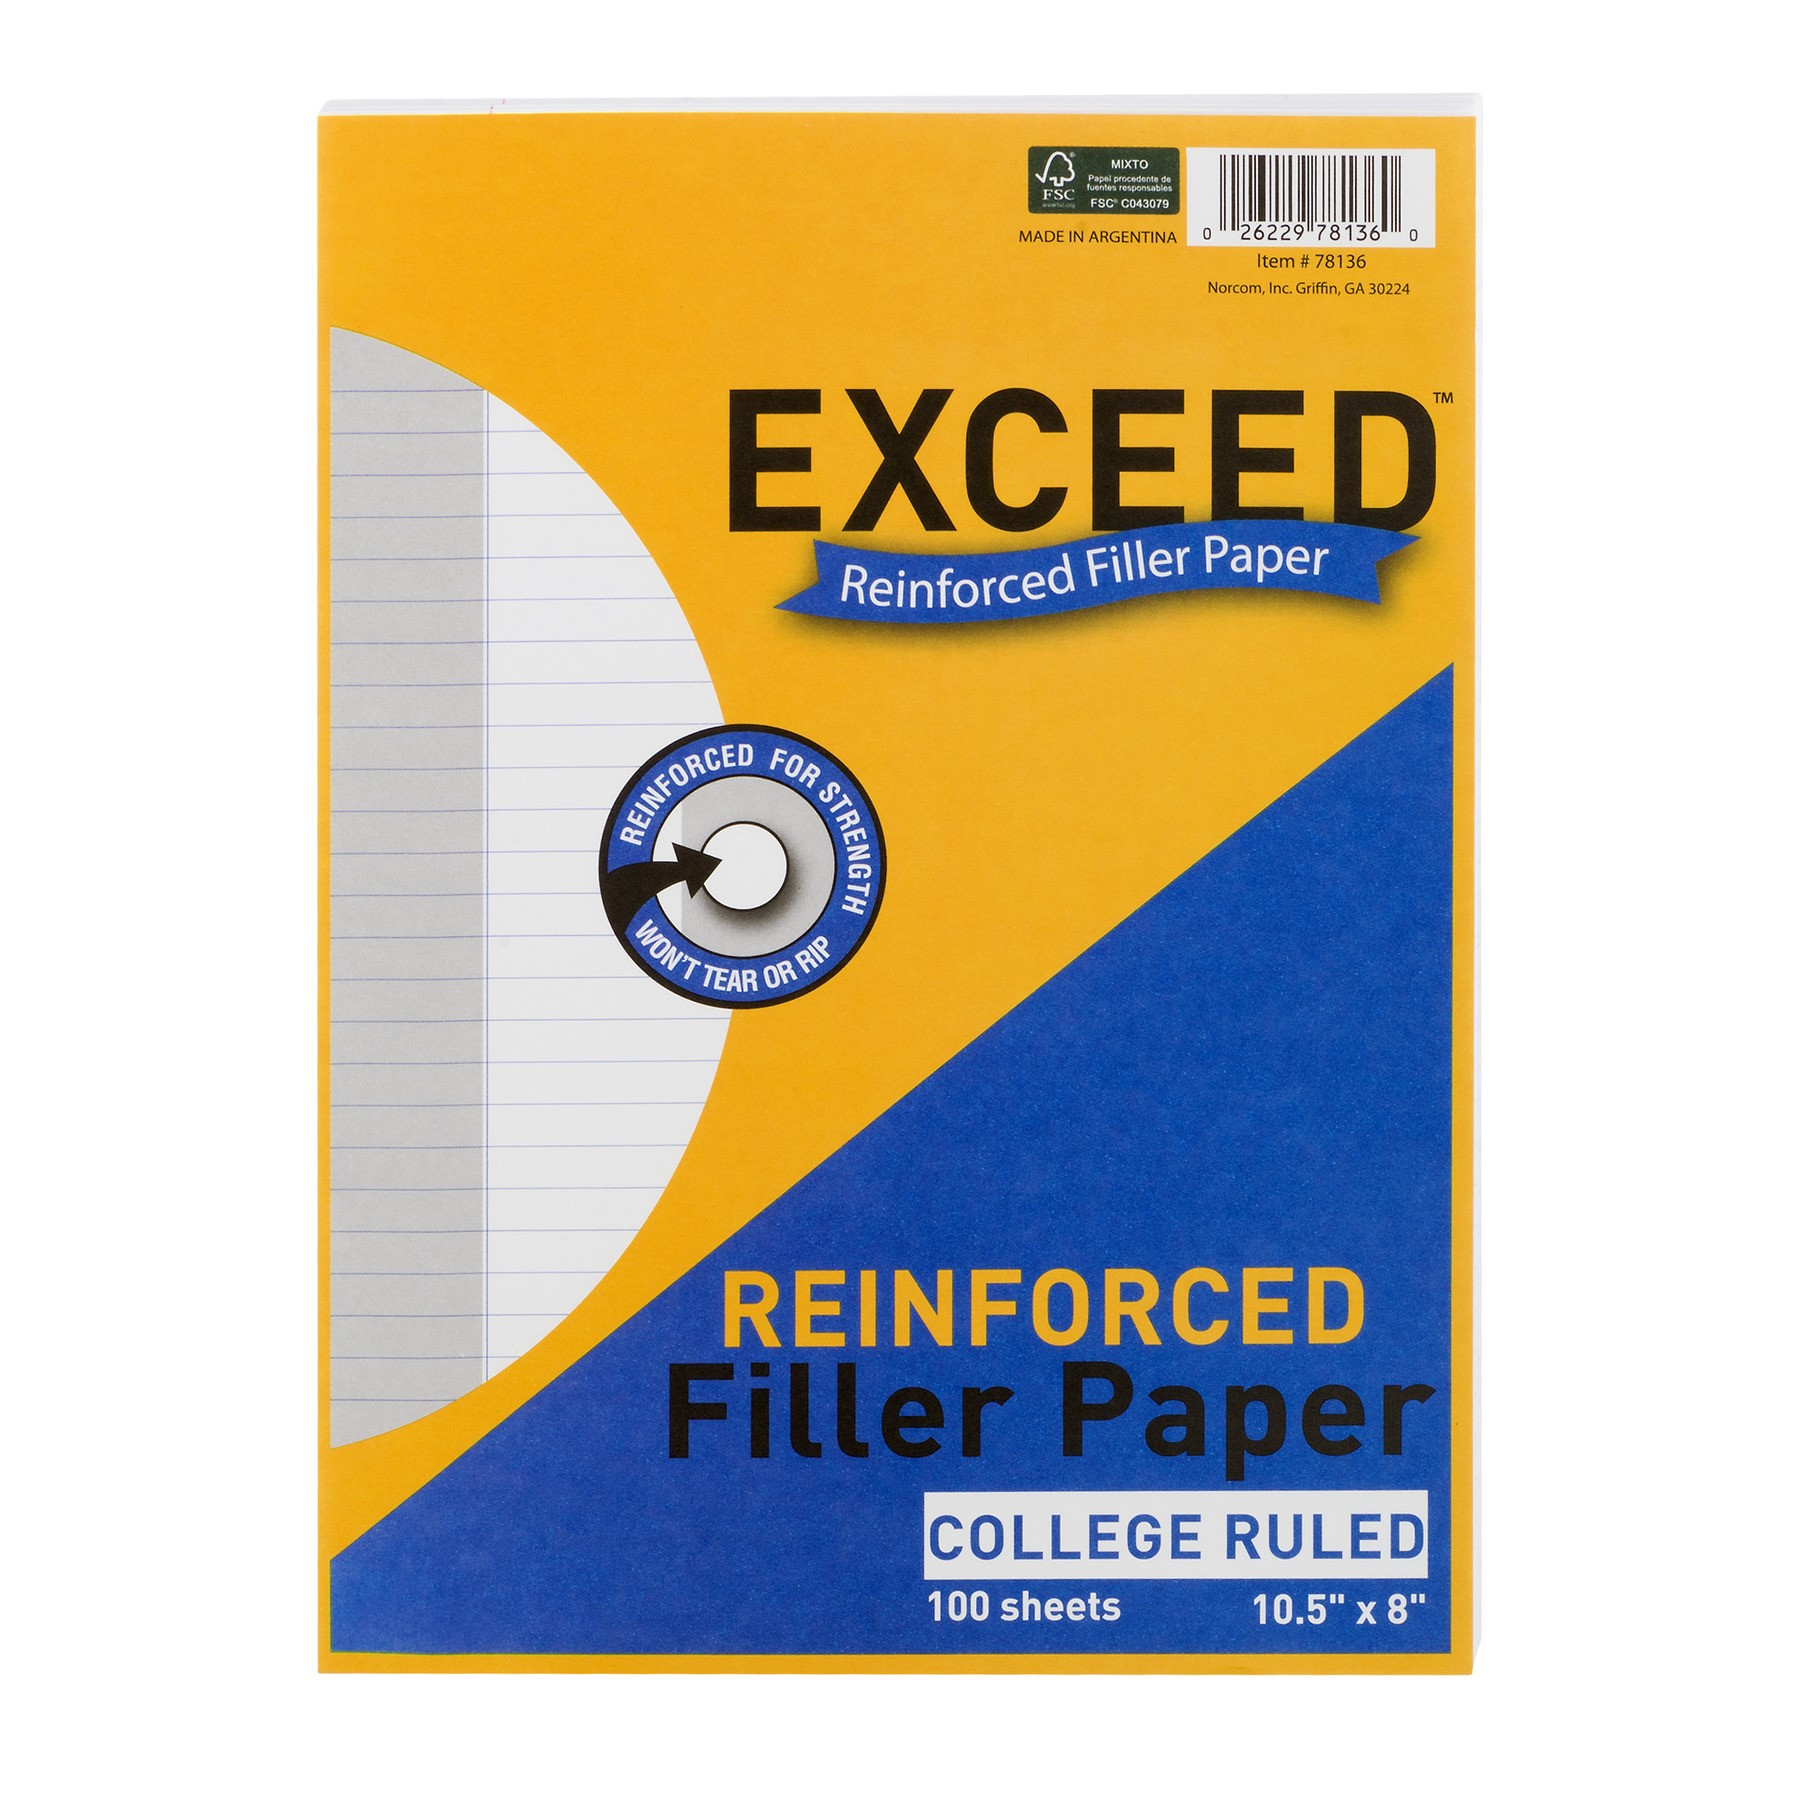 Exceed Reinforced Filler Paper College Ruled - 100 Sheets